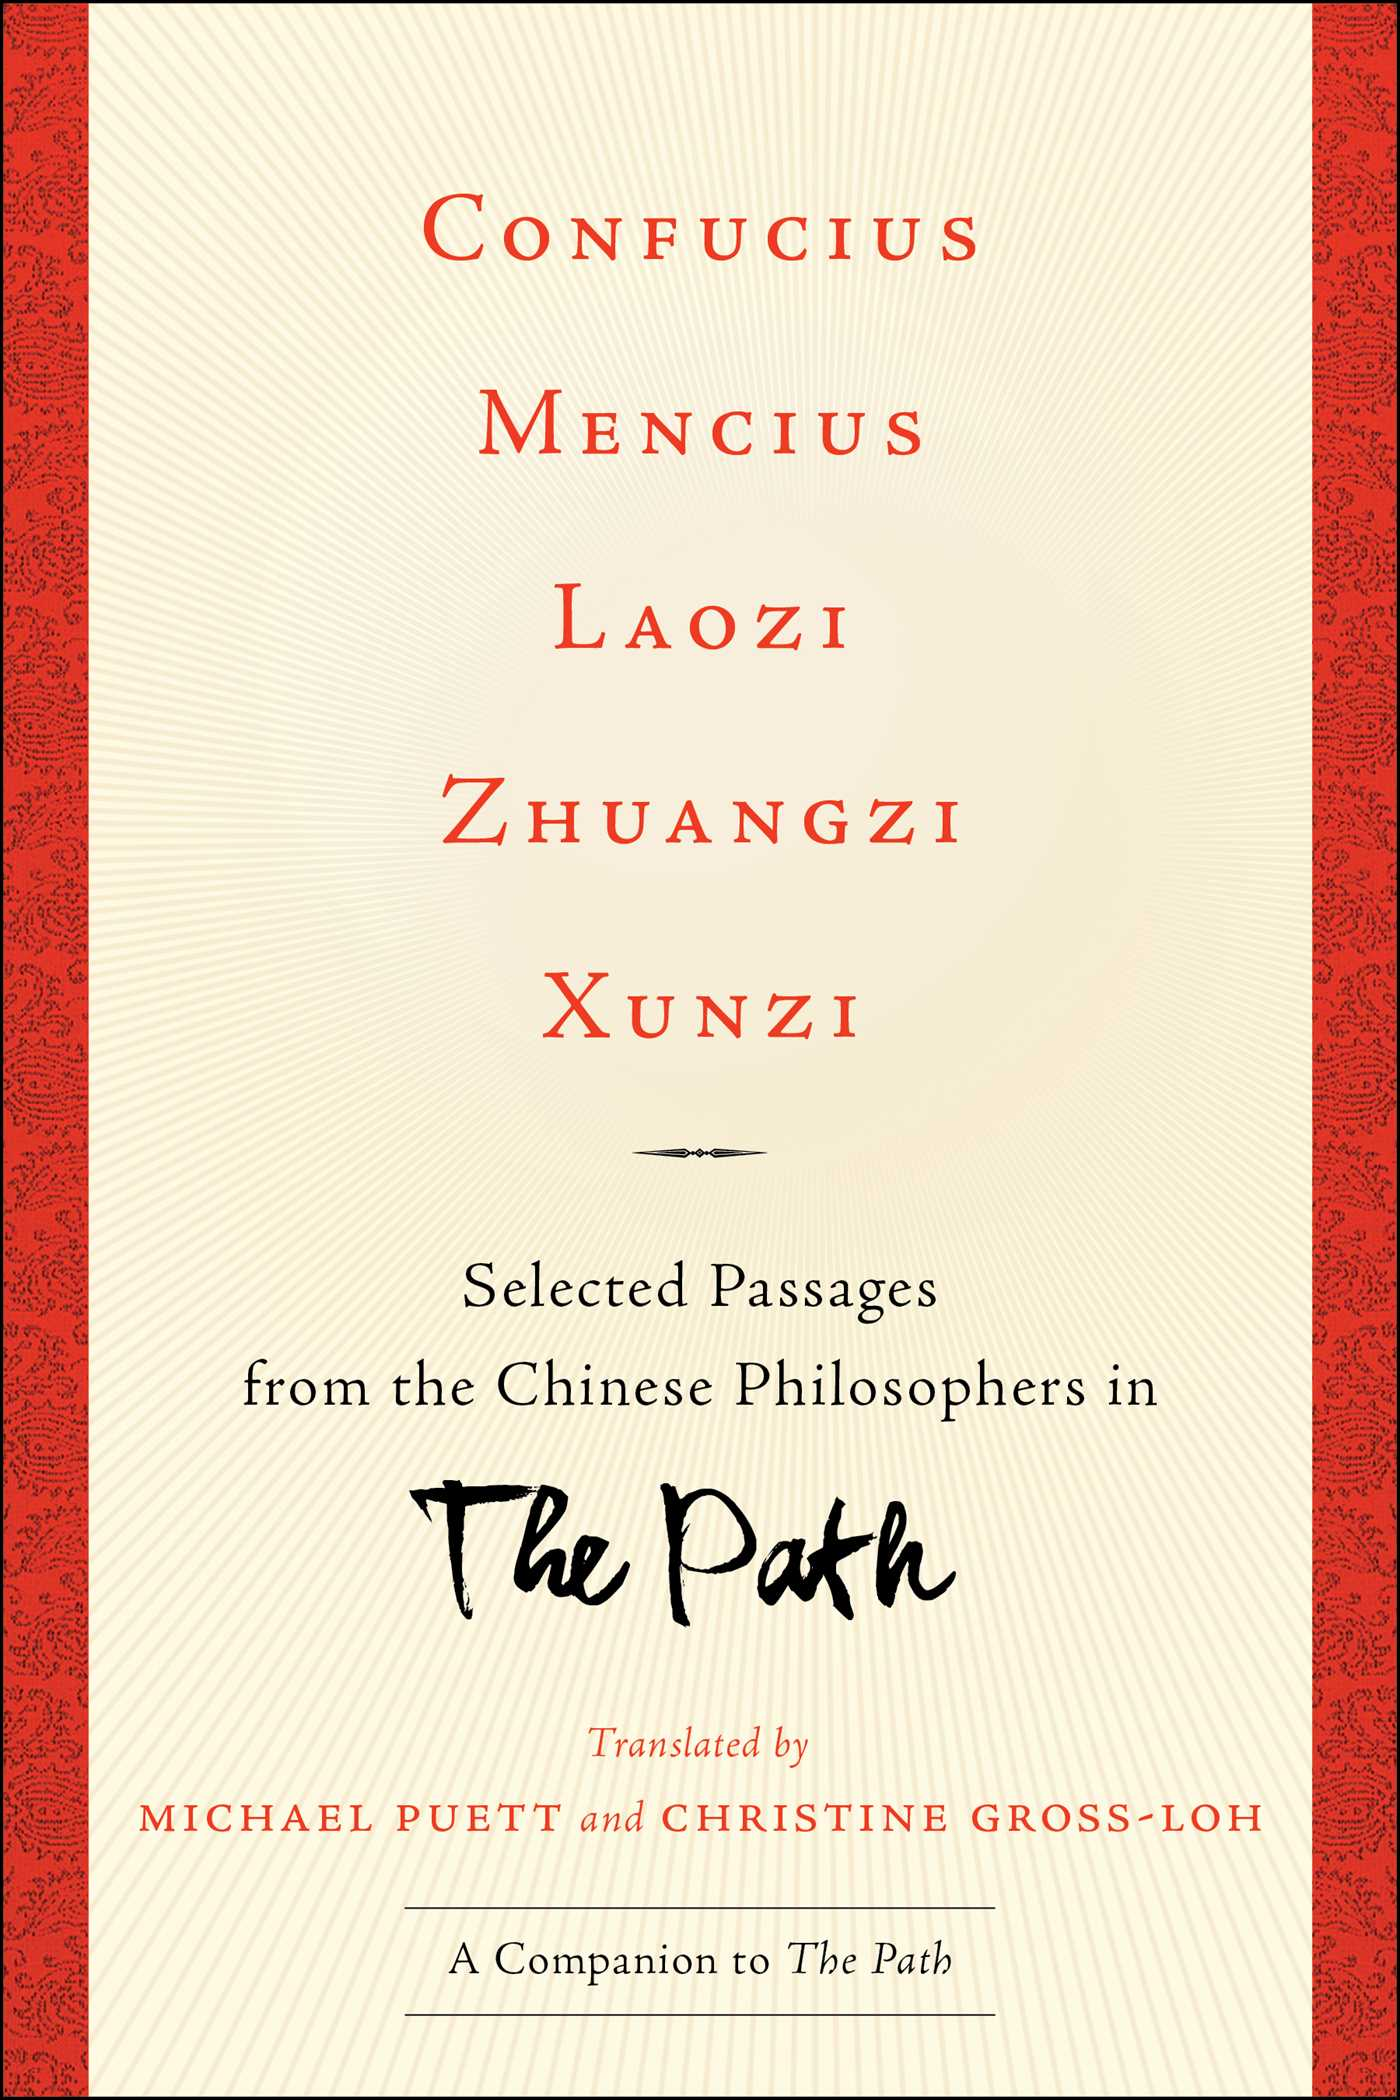 mencius and xunzi Early confucianism (featuring confucius, mencius we also contrast mencius' view of human nature with that of another early confucian, xunzi.